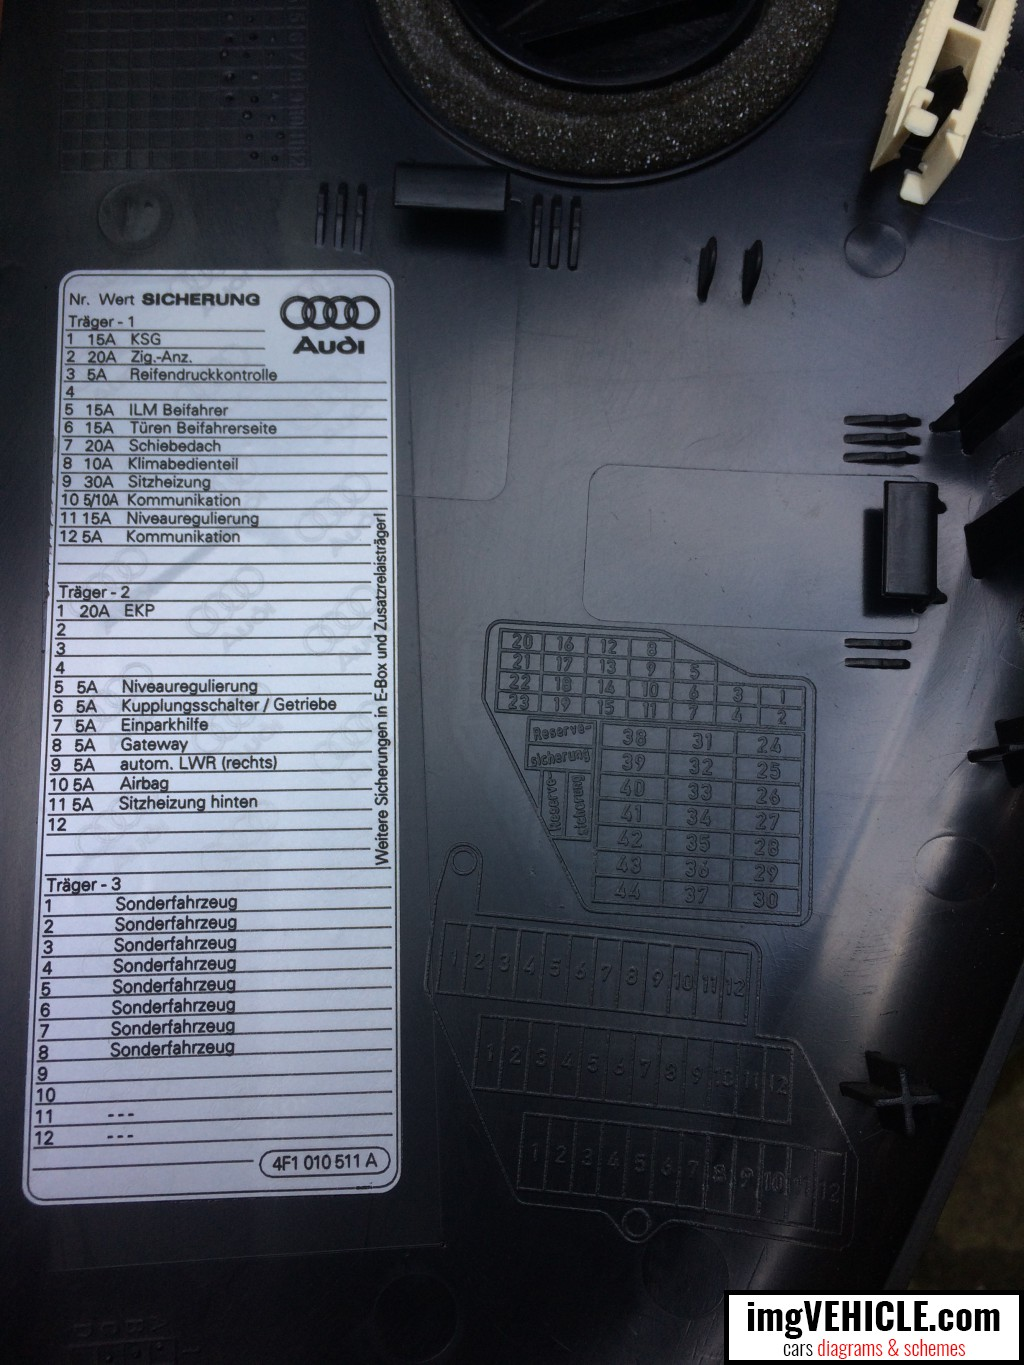 medium resolution of audi a6 c6 fuse diagram wiring diagram advance fuse box audi a6 c6 a6 c6 fuse